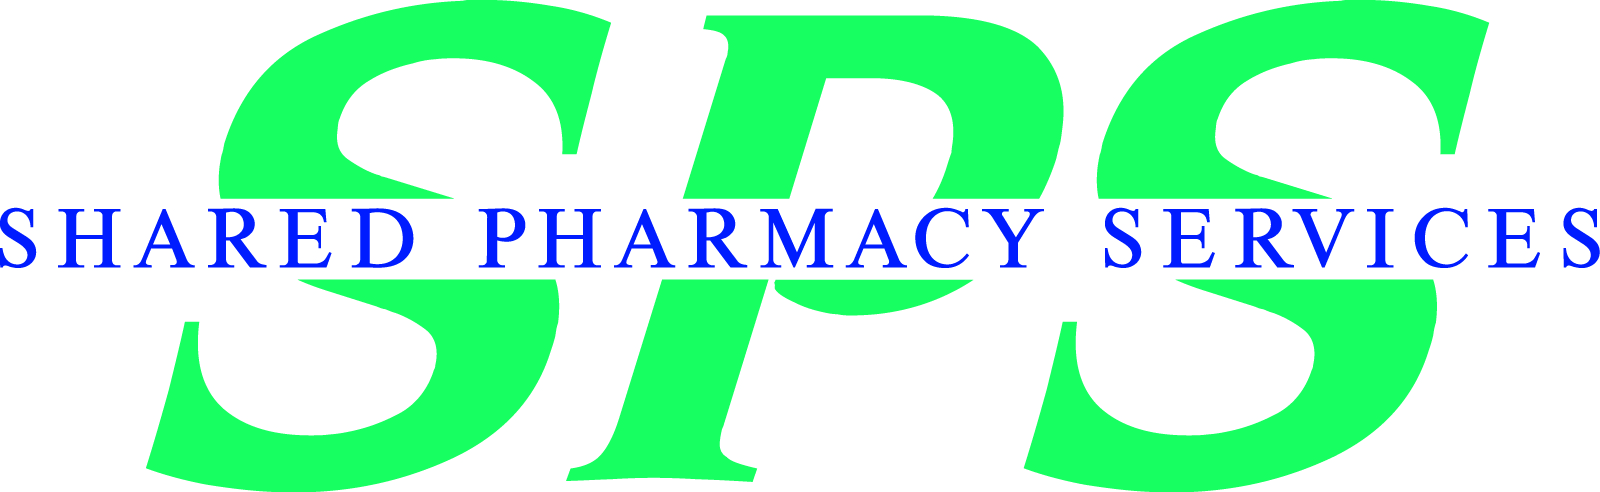 Shared Pharmacy Services